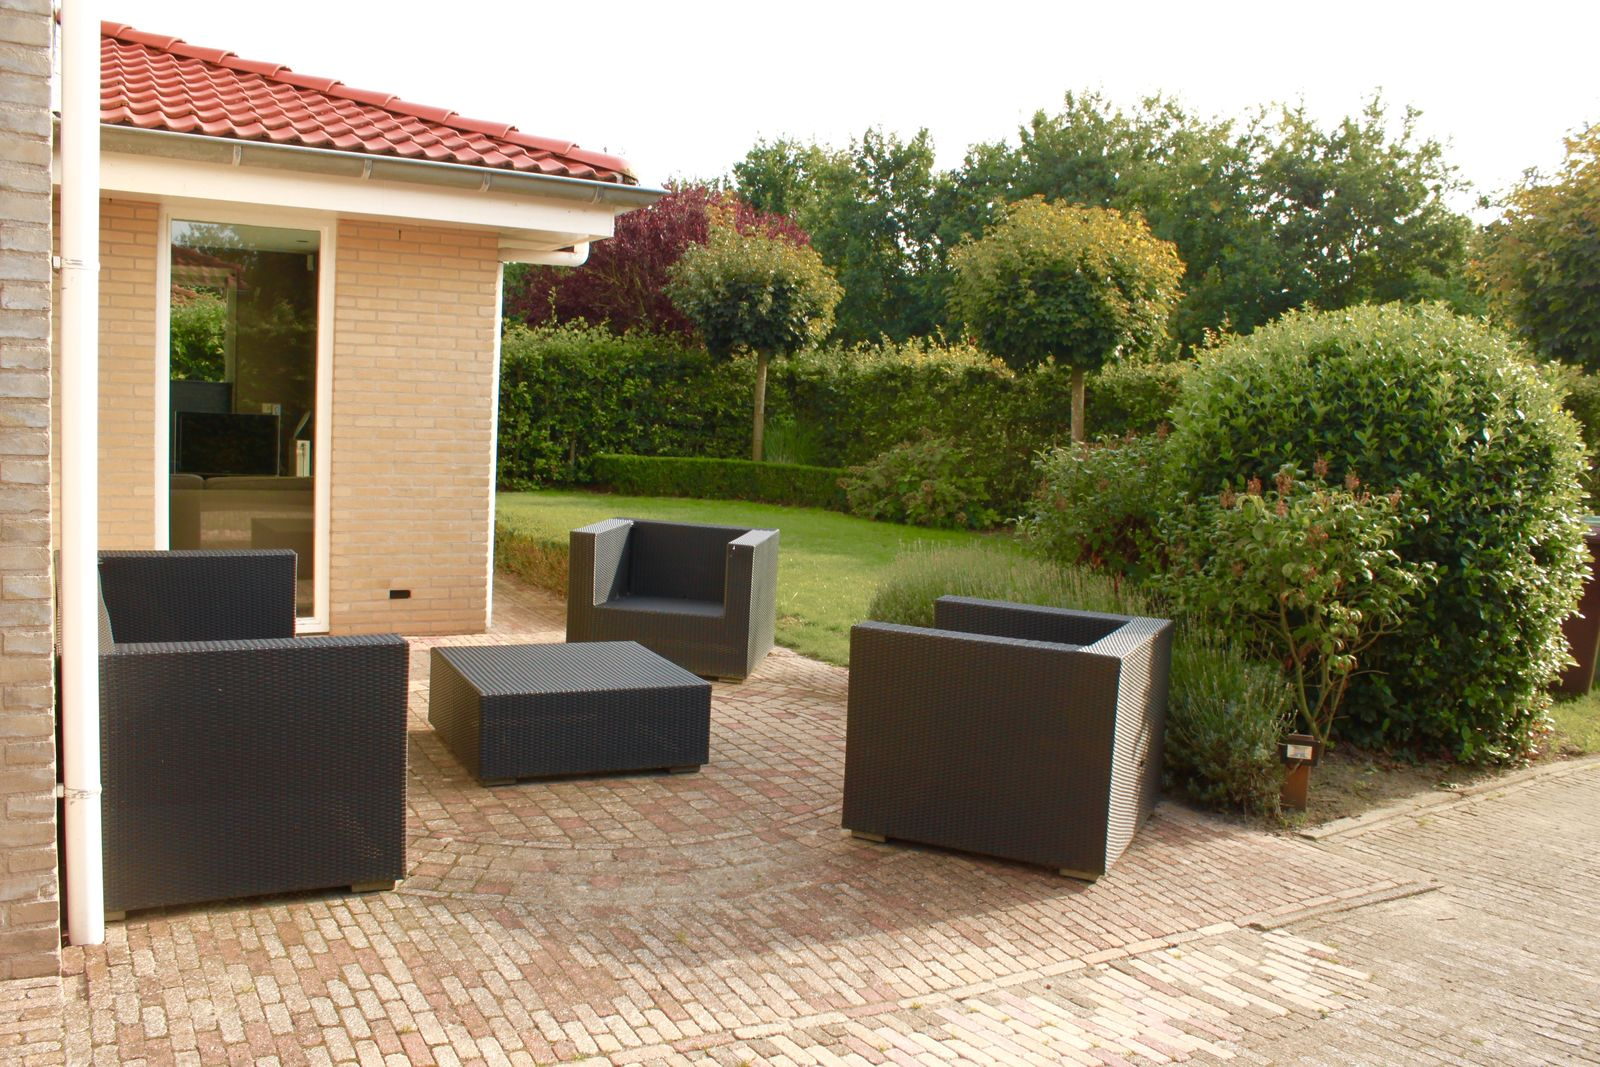 Image of Ouddorp - Vacation home Oude Nieuwlandseweg 4D 6 persons